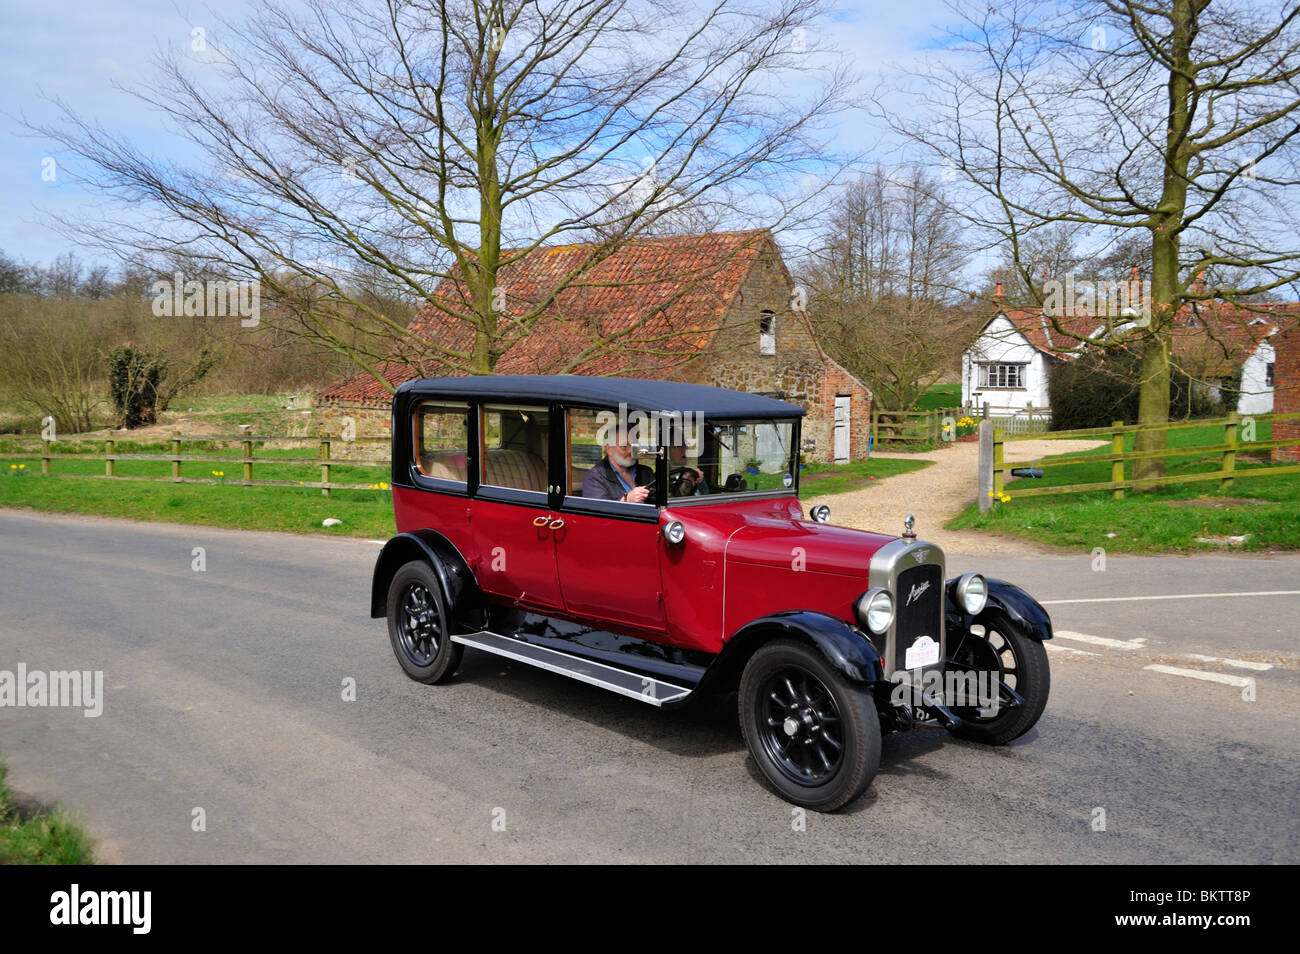 Austin 20/4 Mayfair Limousine 1927 Vintage Cars ON THE OPEN ROAD. - Stock Image